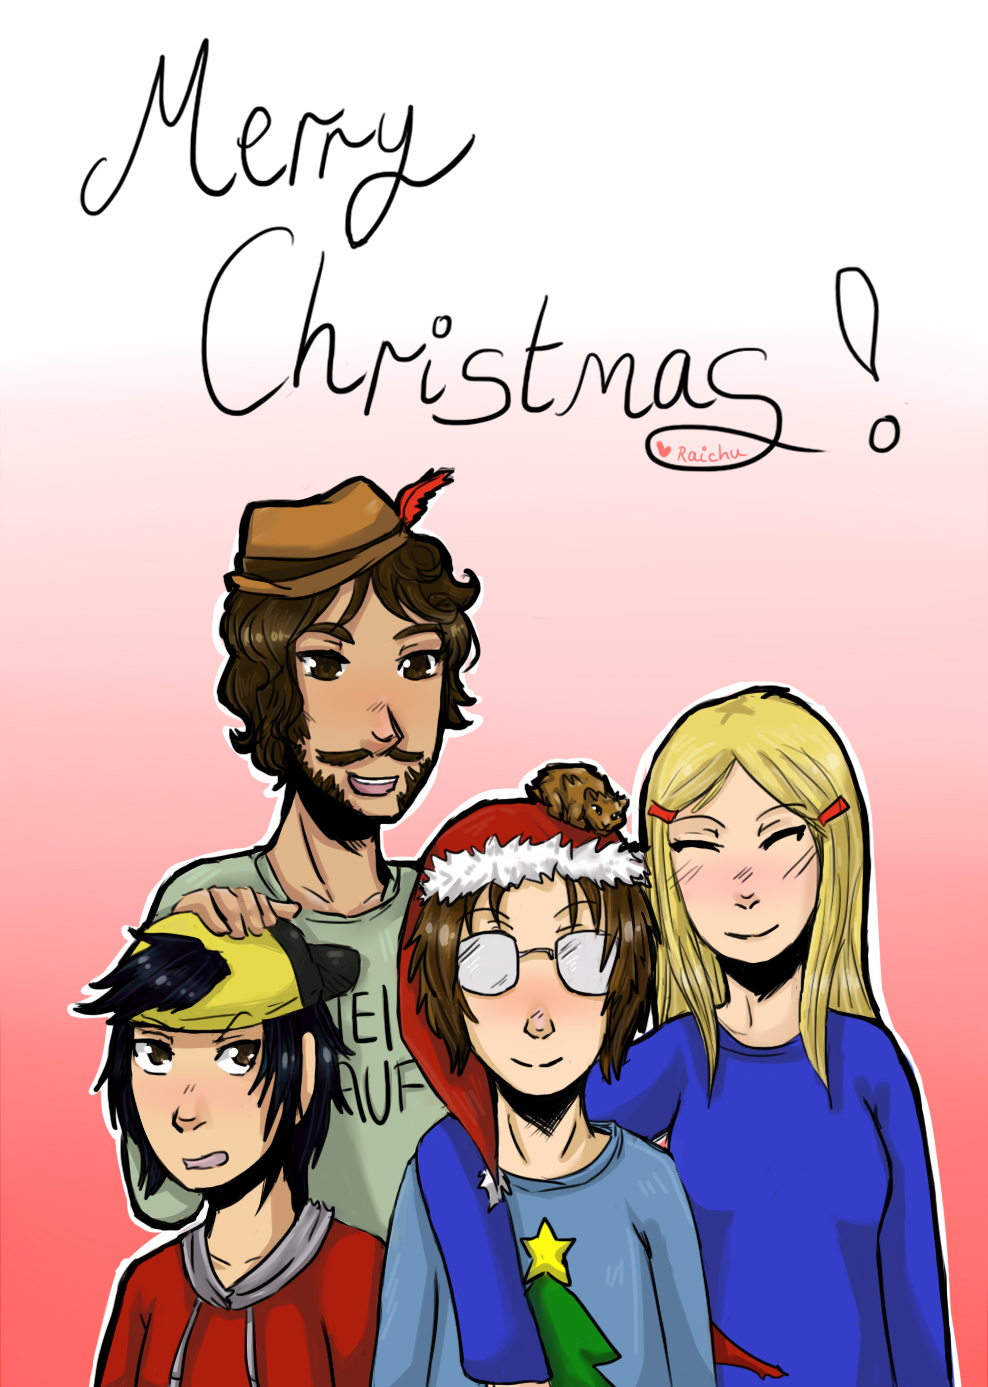 Merry Christmas from Spoofy Randomness!